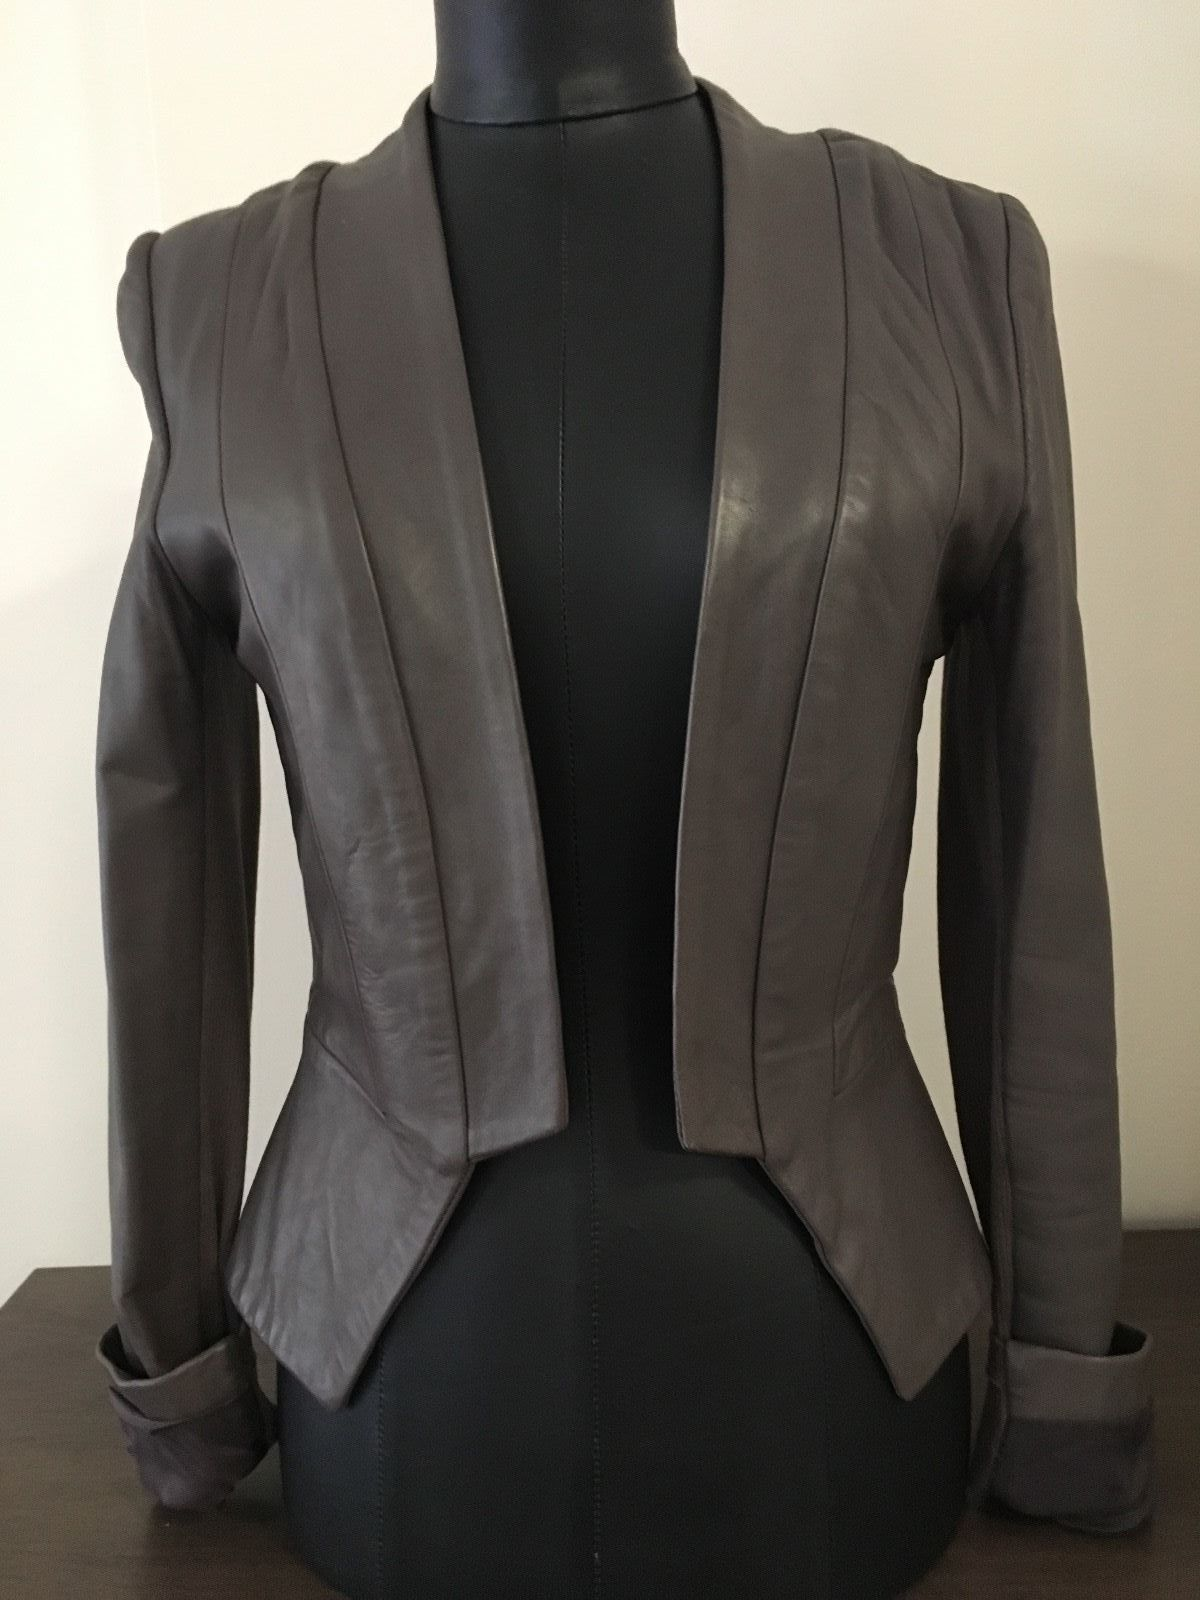 100 Lamb Leather, made in Australia. No front closure